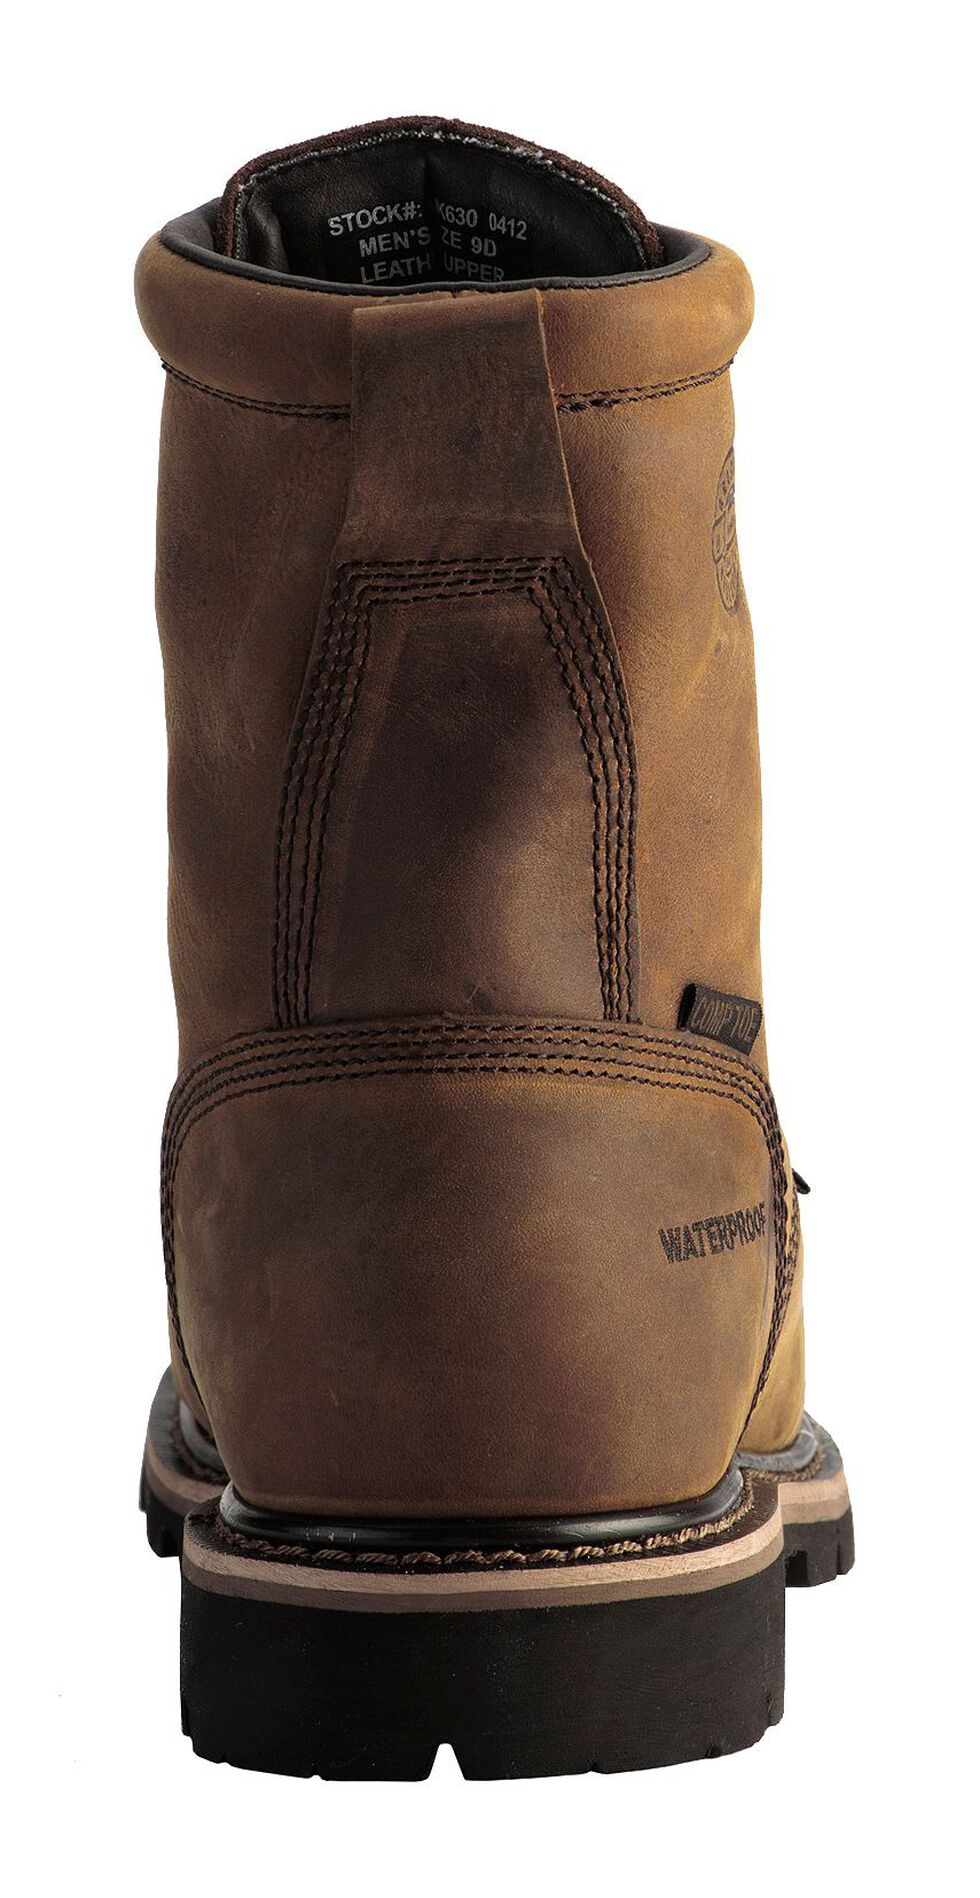 """Justin Men's Pulley Waterproof MetGuard 8"""" Lace-Up Work Boots - Composite Toe, Brown, hi-res"""